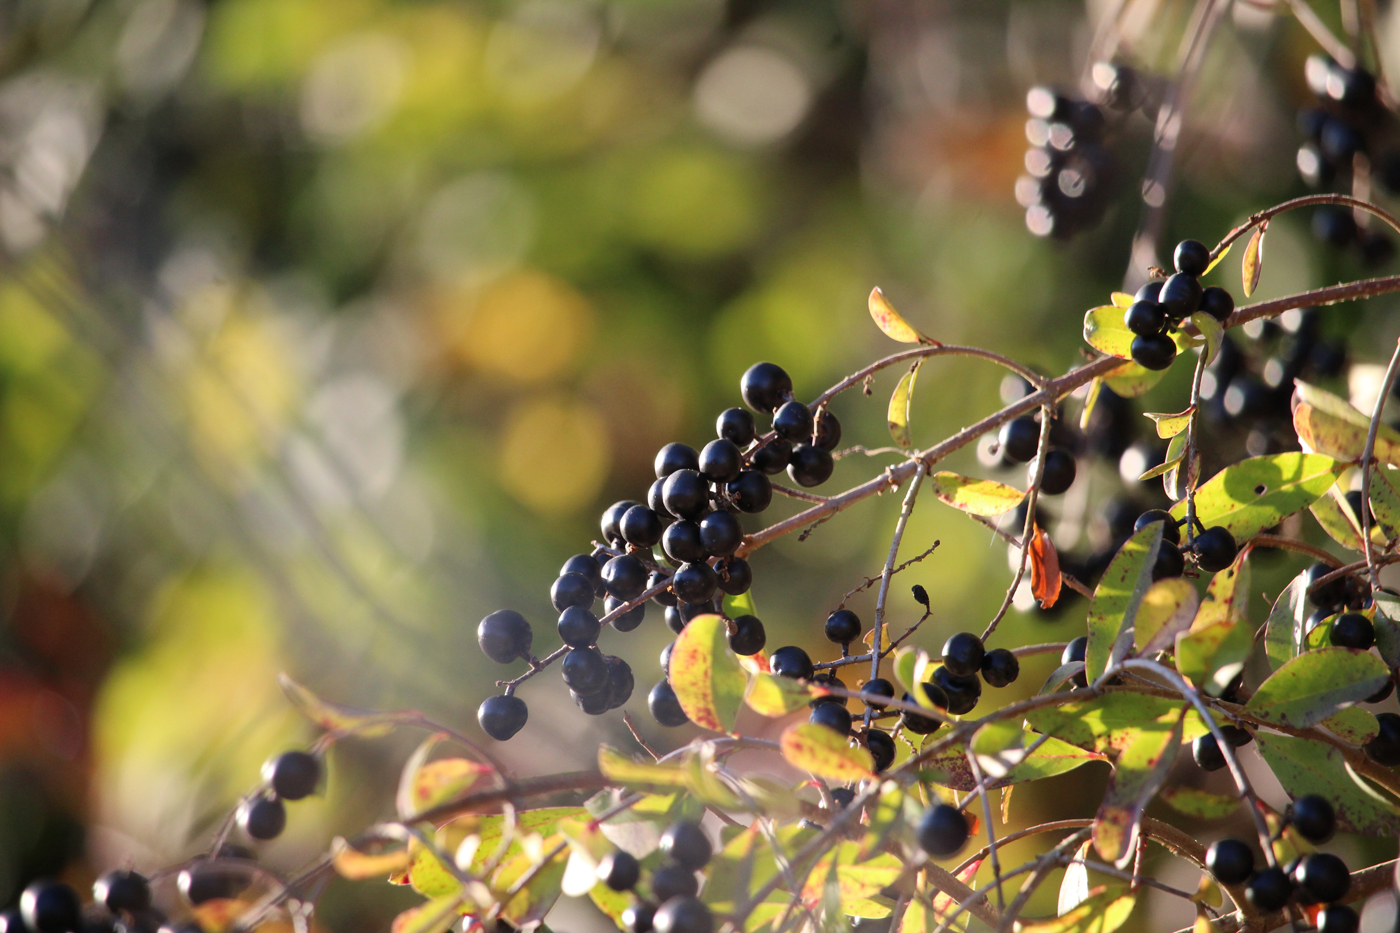 Small black Privet berries dangling in a tree on a sunny day